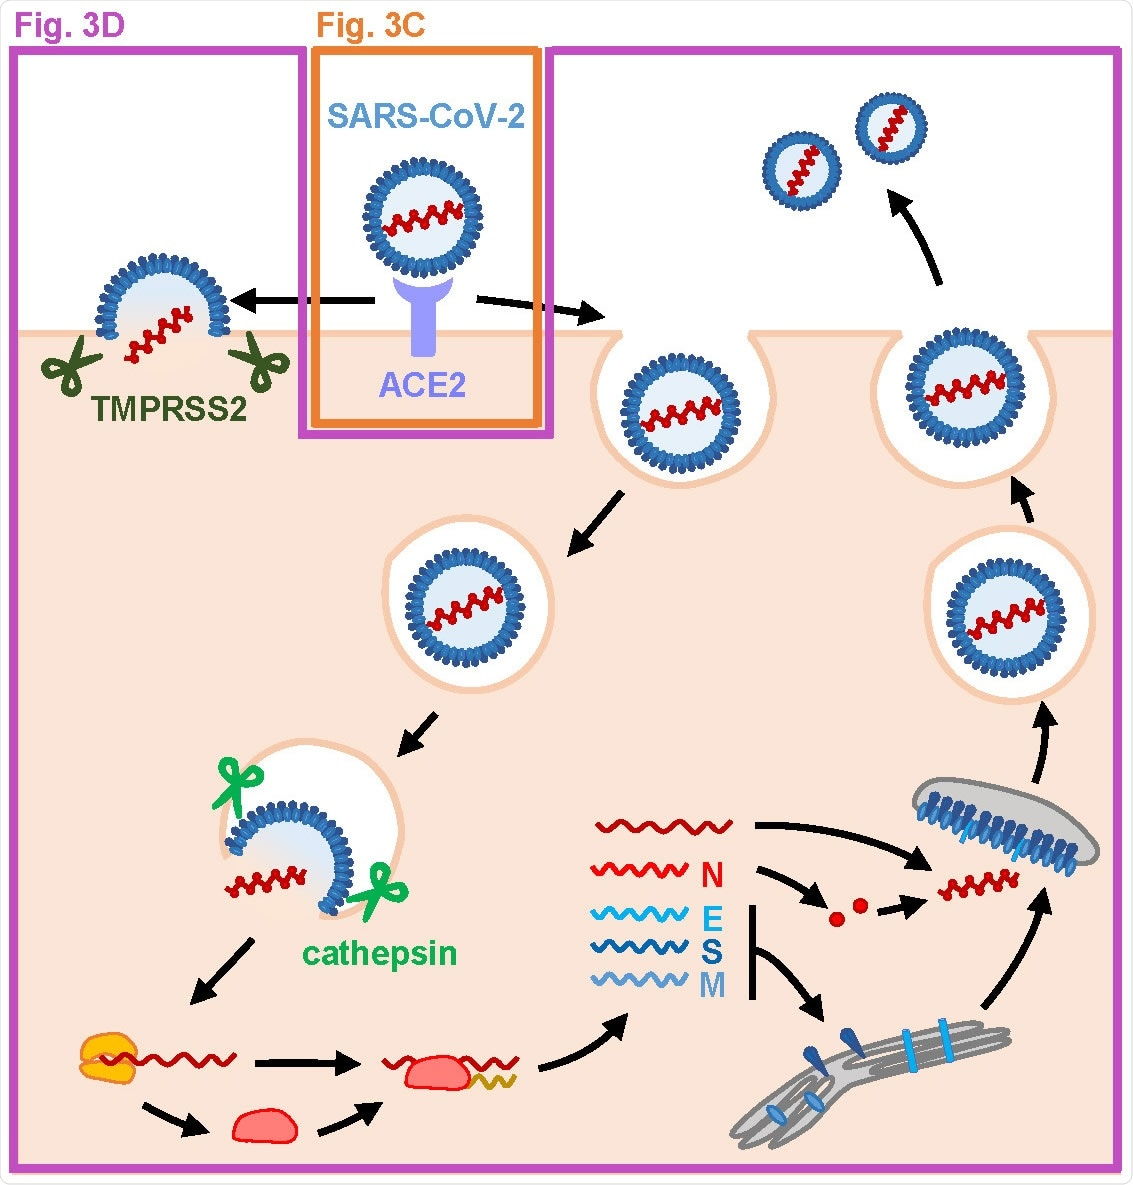 MFQ inhibits the SARS-CoV-2 entry process. (A) SARS-CoV-2 life cycle. SARS-CoV-2 infection is initiated with virus attachment to the host cells that involves the cellular receptor, angiotensin converting enzyme 2 (ACE2), followed by the cleavage of viral Spike (S) proteins by either transmembrane serine protease (TMPRSS2) on the plasma membrane or cathepsins in the endosome/lysosome that induces fusion of viral and host membranes. Viral RNA is translated, processed and replicated to be assembled into progeny virus with viral structural proteins and released extracellularly.